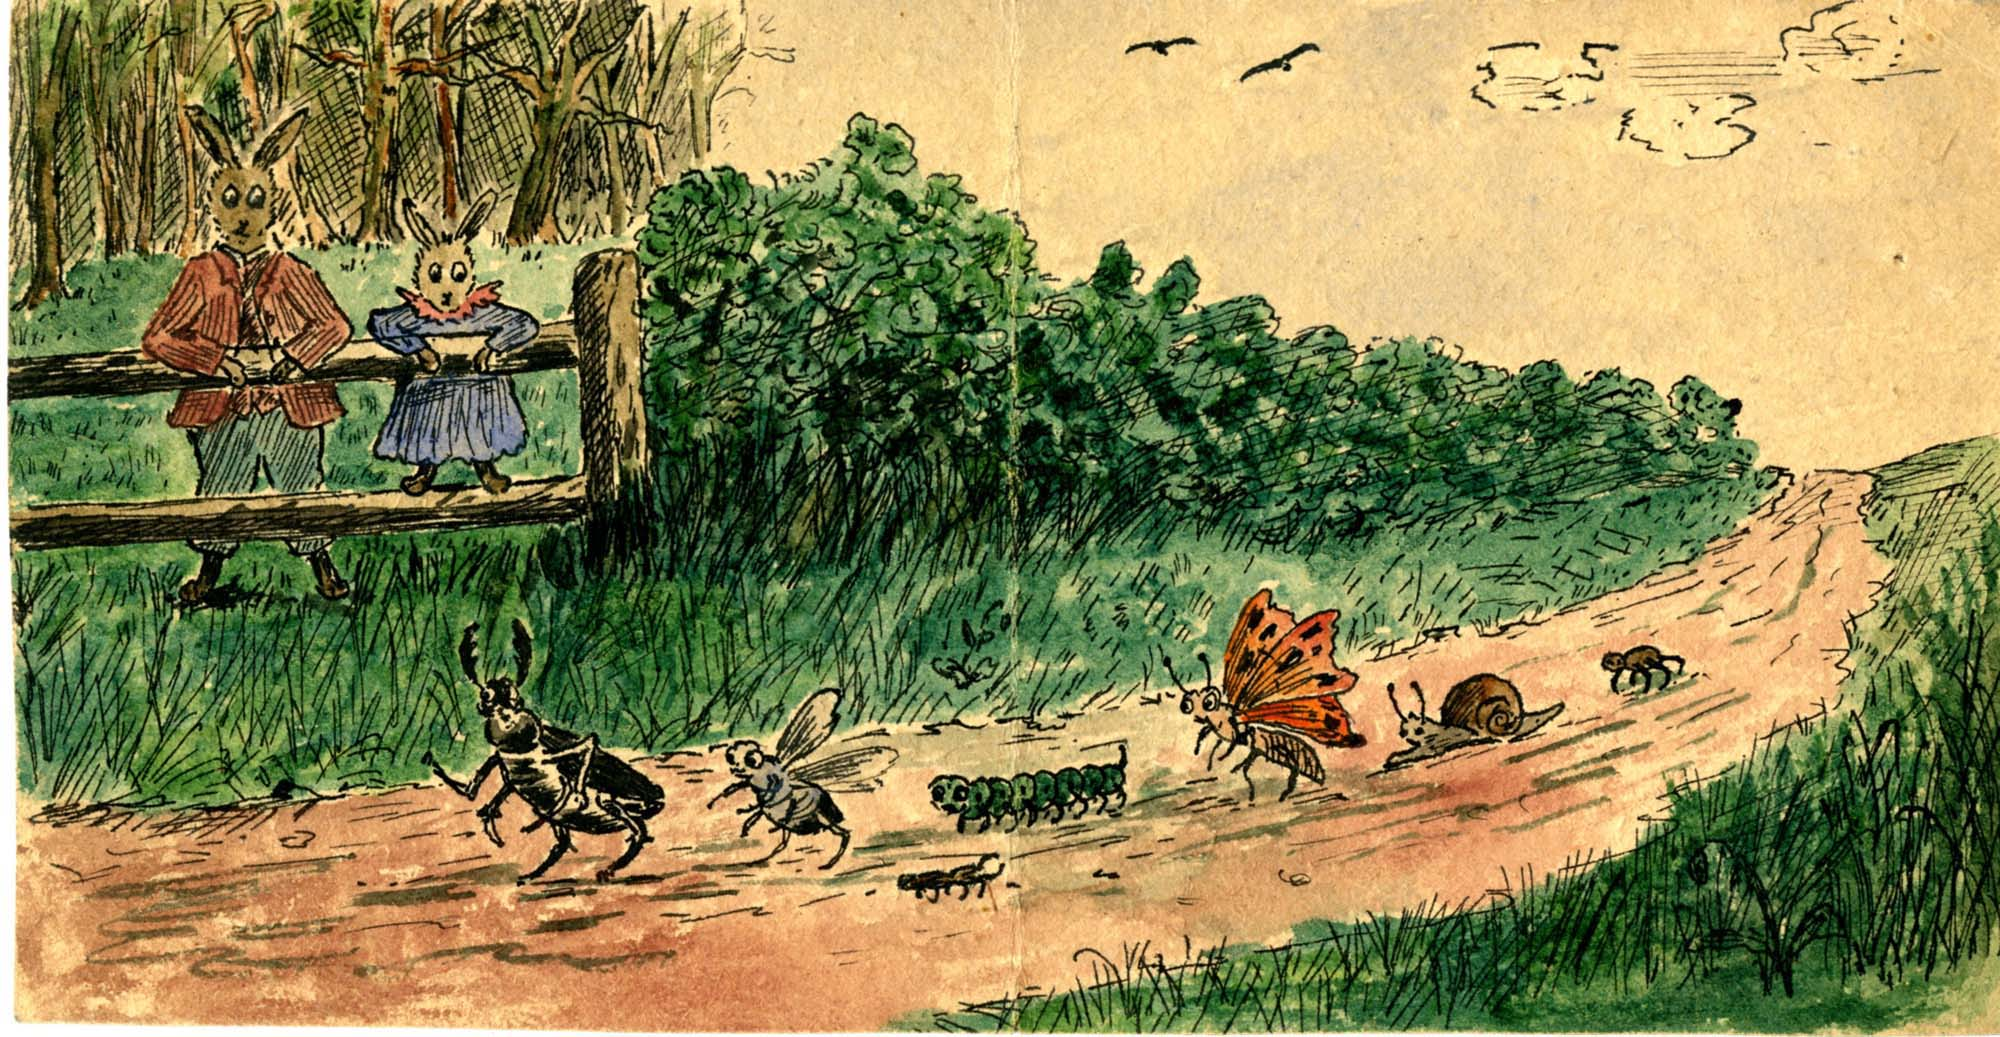 a drawing of two rabbits watching a procession of insects down a county lane